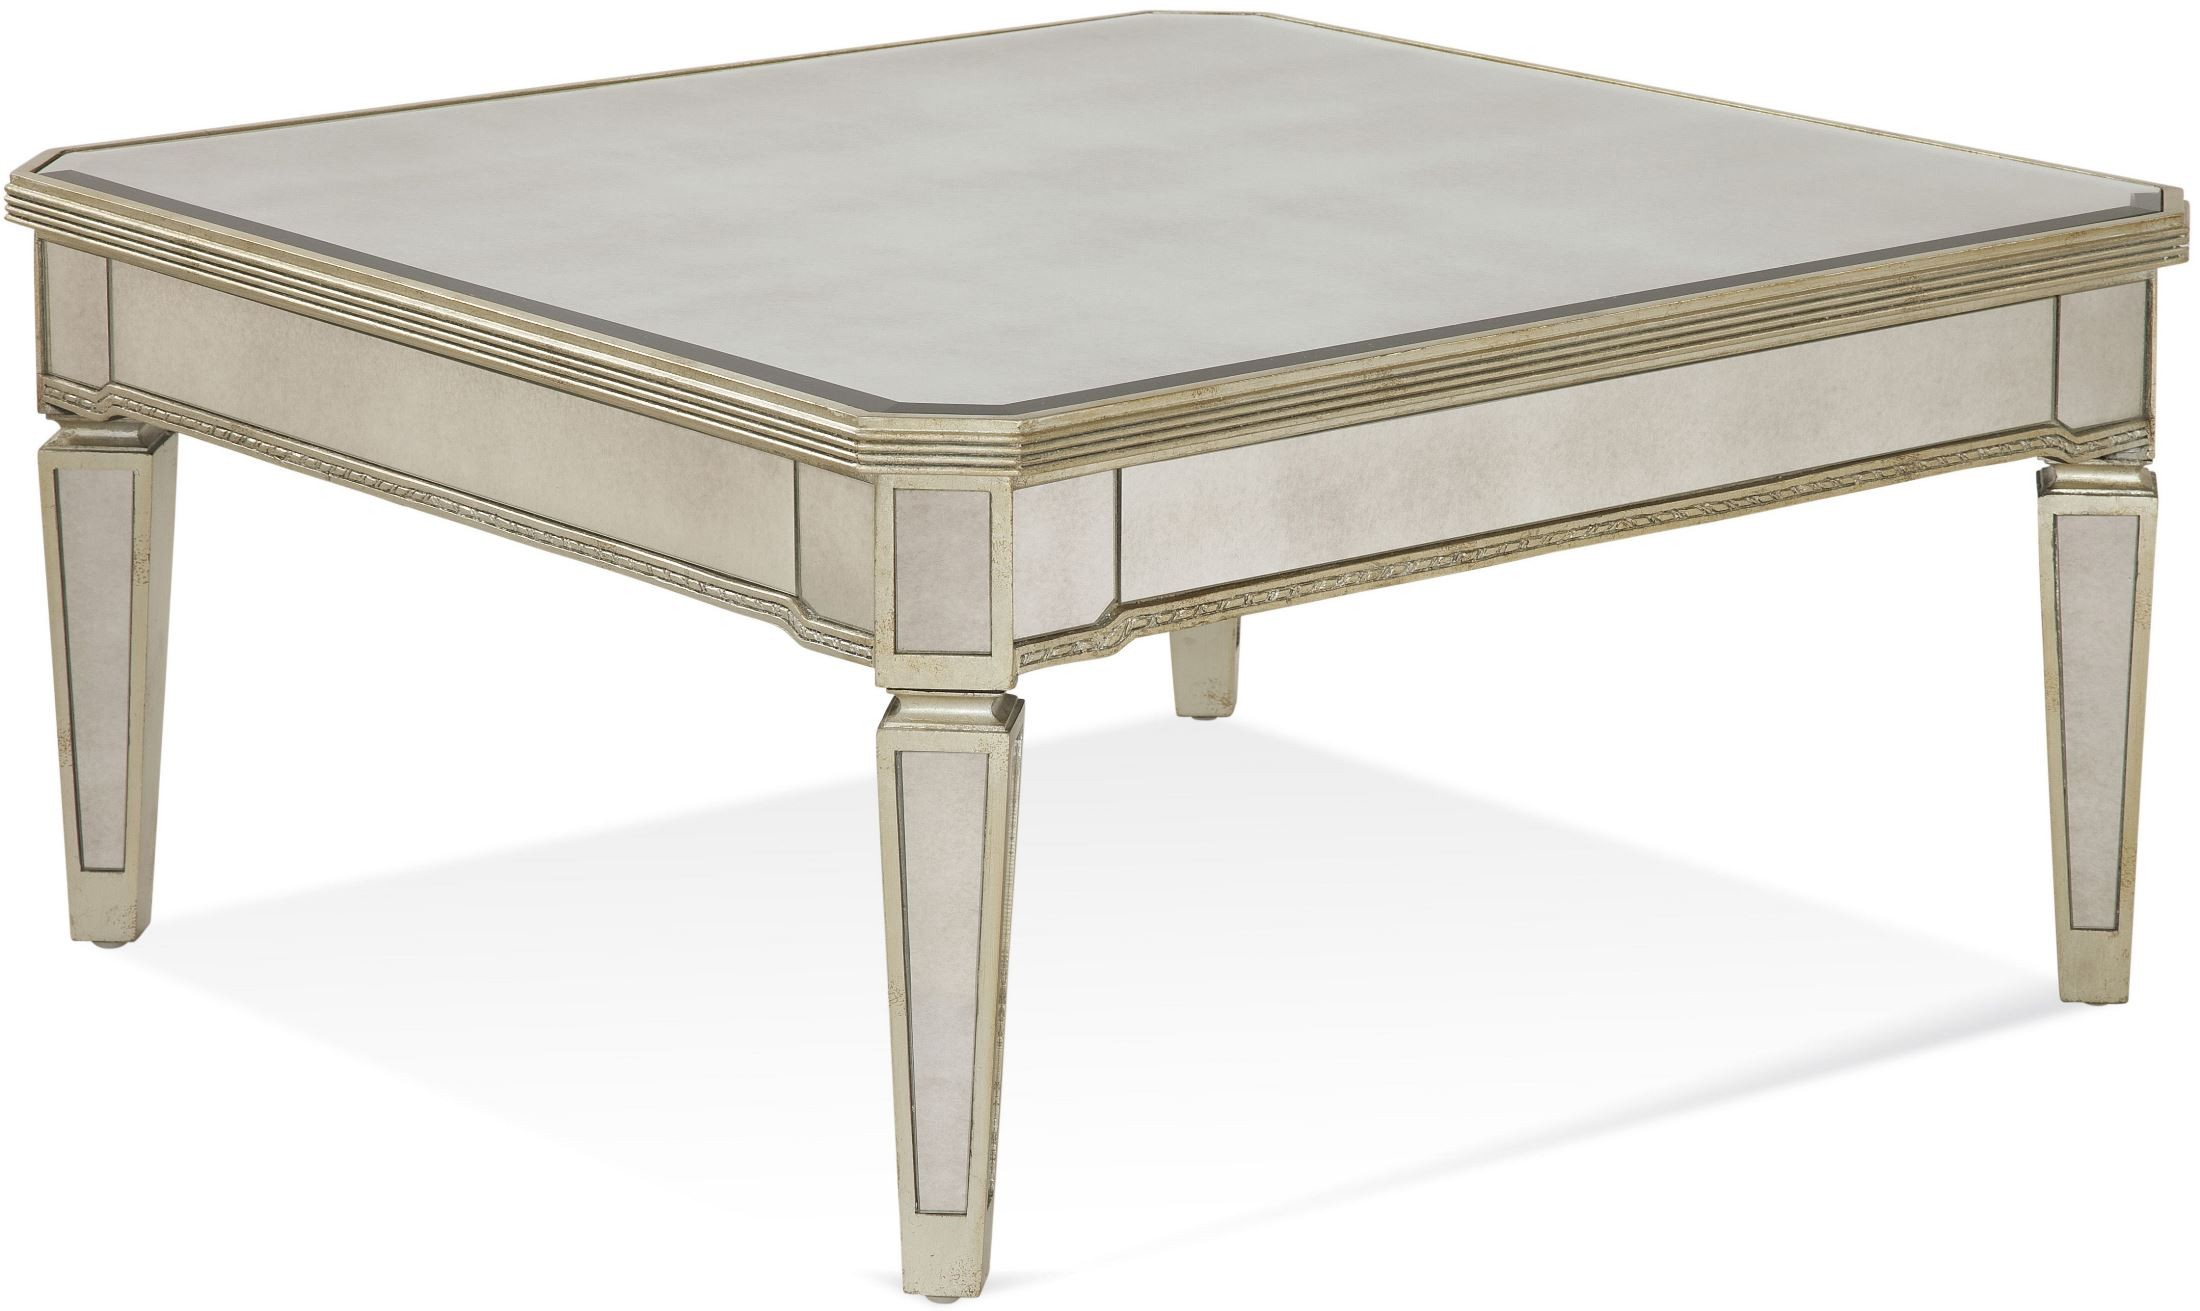 Borghese Mirrored Square Cocktail Table From Bassett